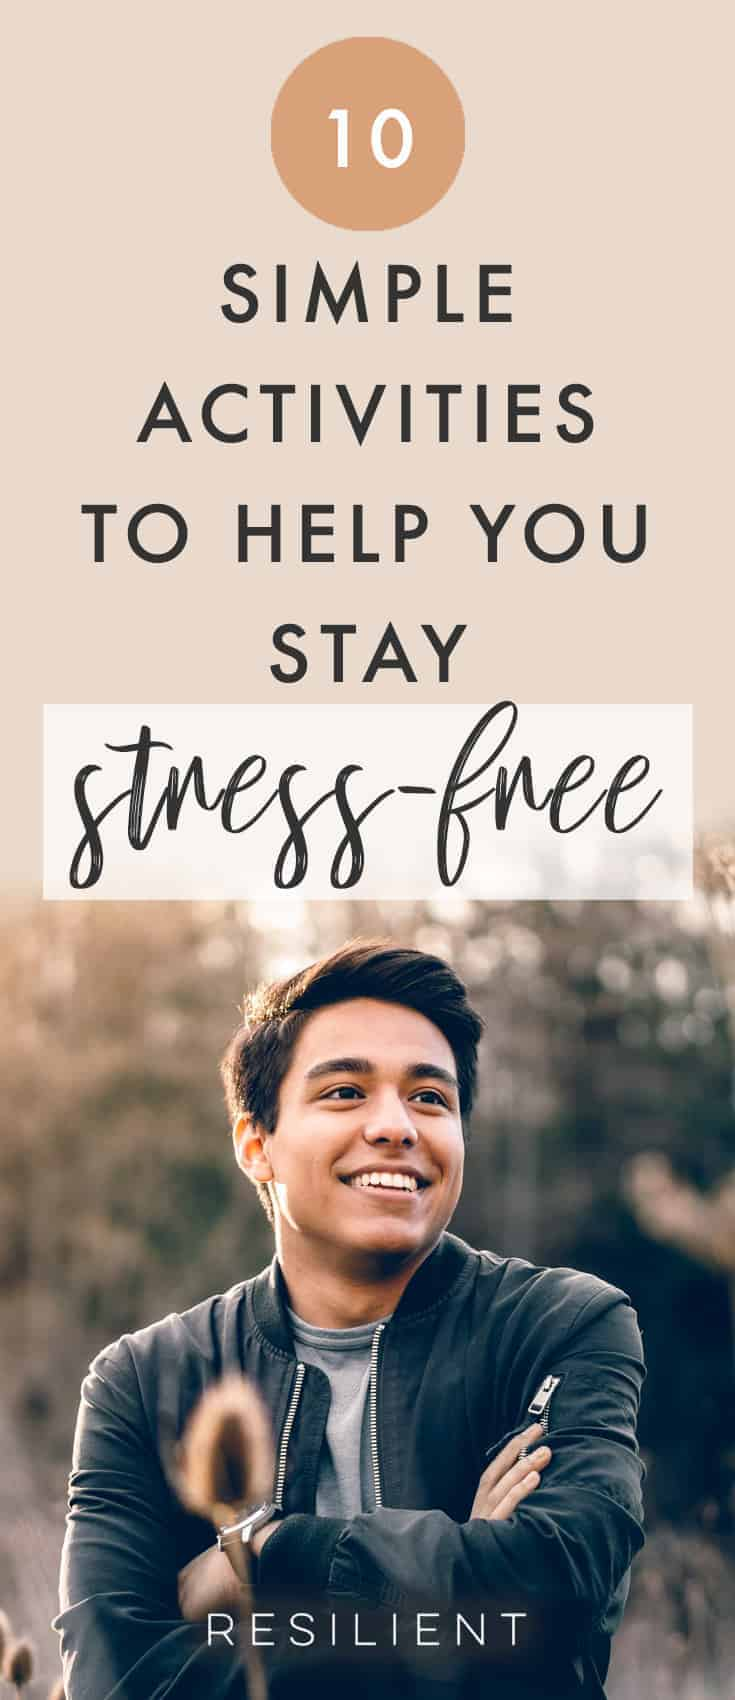 We face stress every day and it has somehow become a part of our lives. Dealing with stress is not easy and stress can sometimes lead to a number of complications. To avoid stress overload, here are 10 simple activities that will help you stay stress-free.